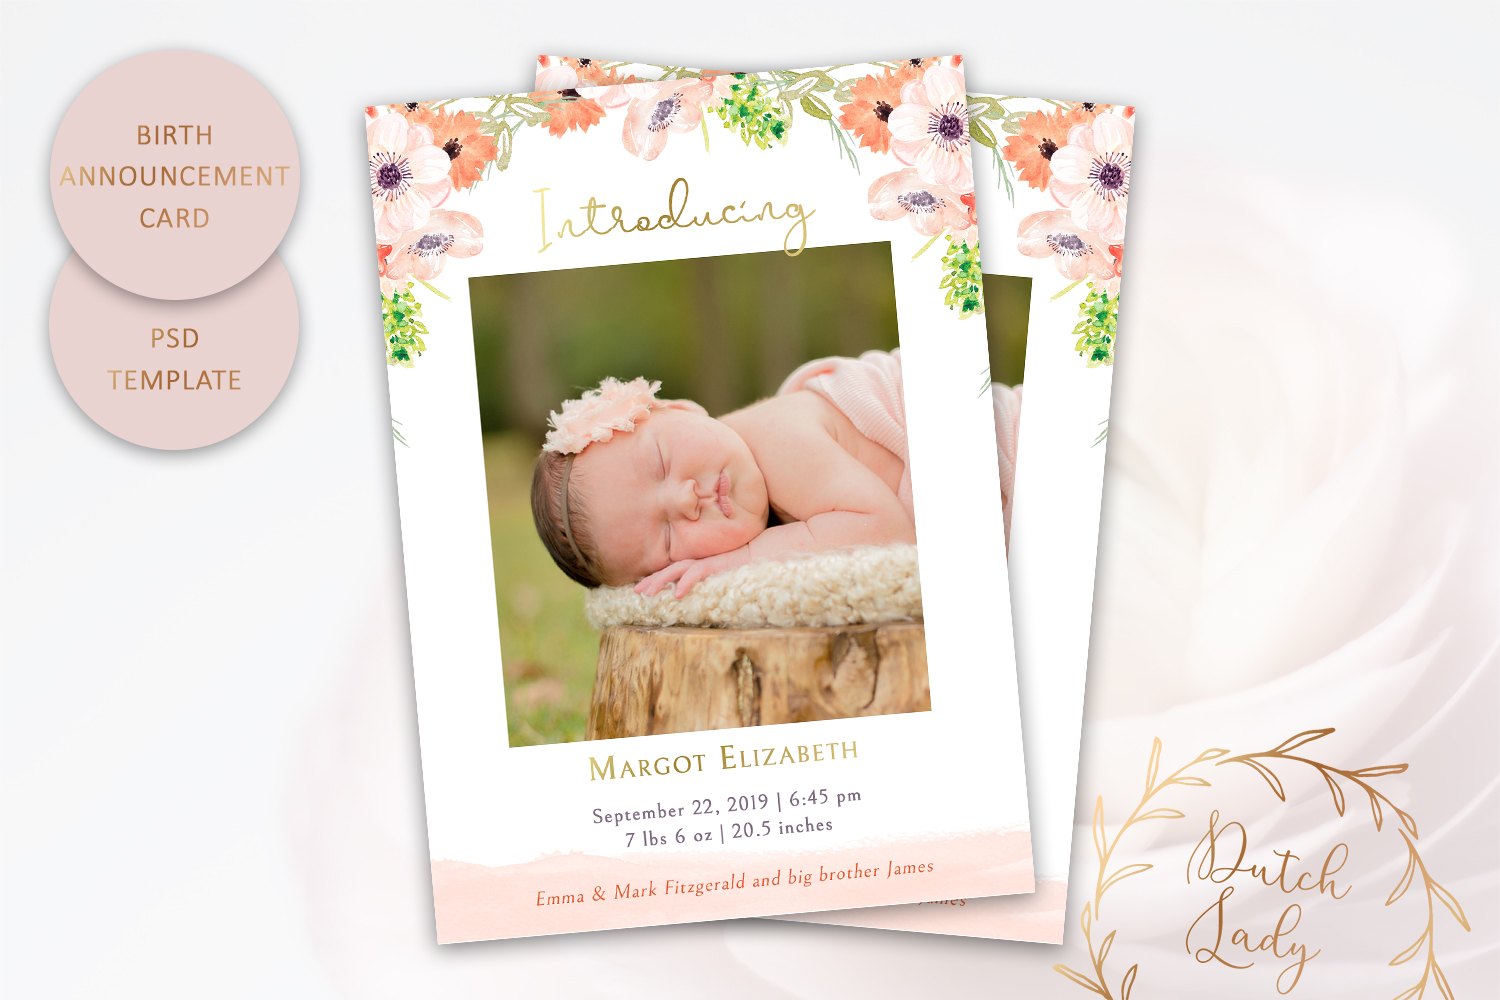 Download Free Birth Announcement Card Template 8 Graphic By Daphnepopuliers for Cricut Explore, Silhouette and other cutting machines.